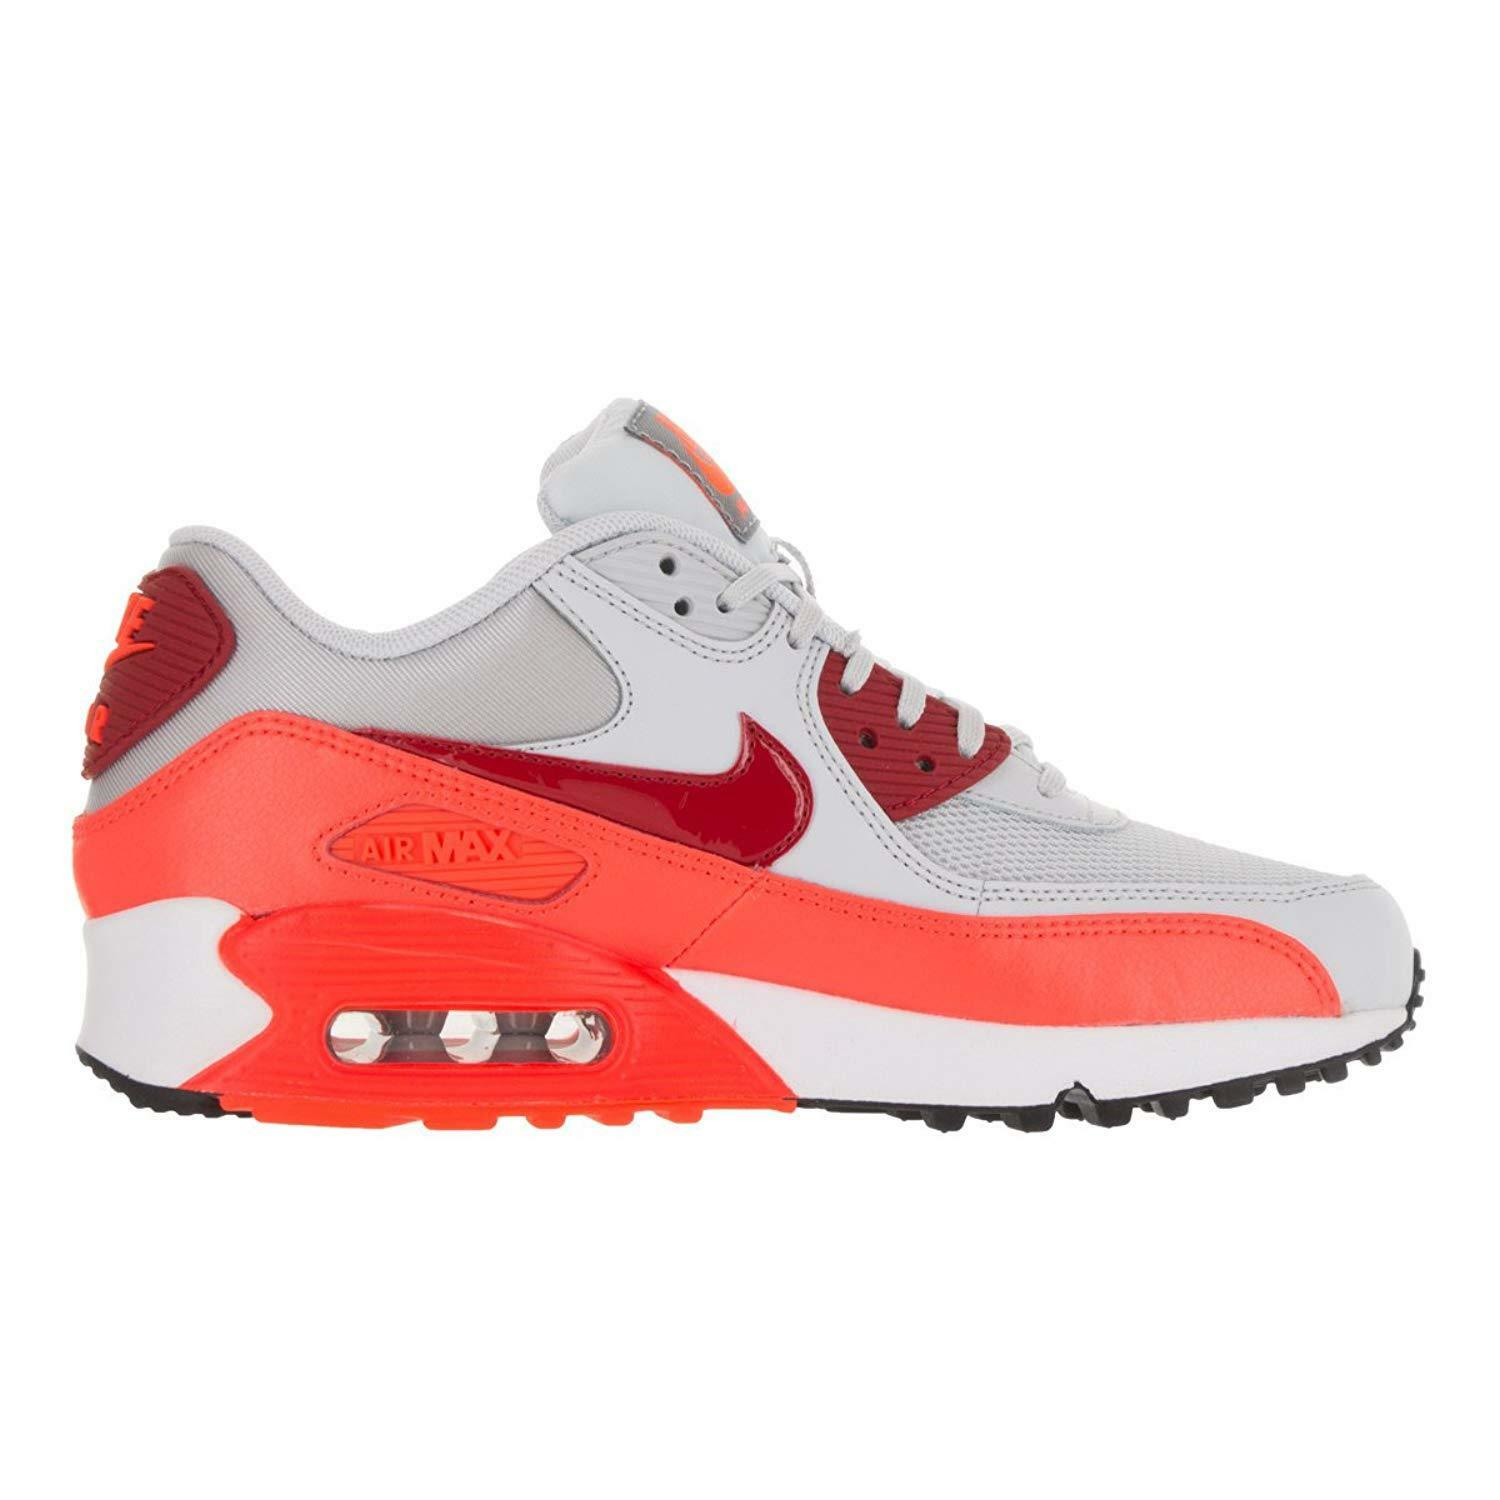 NIKE Air Max 90 Essential (Pure Platinum Gym Red-Total Crimson)